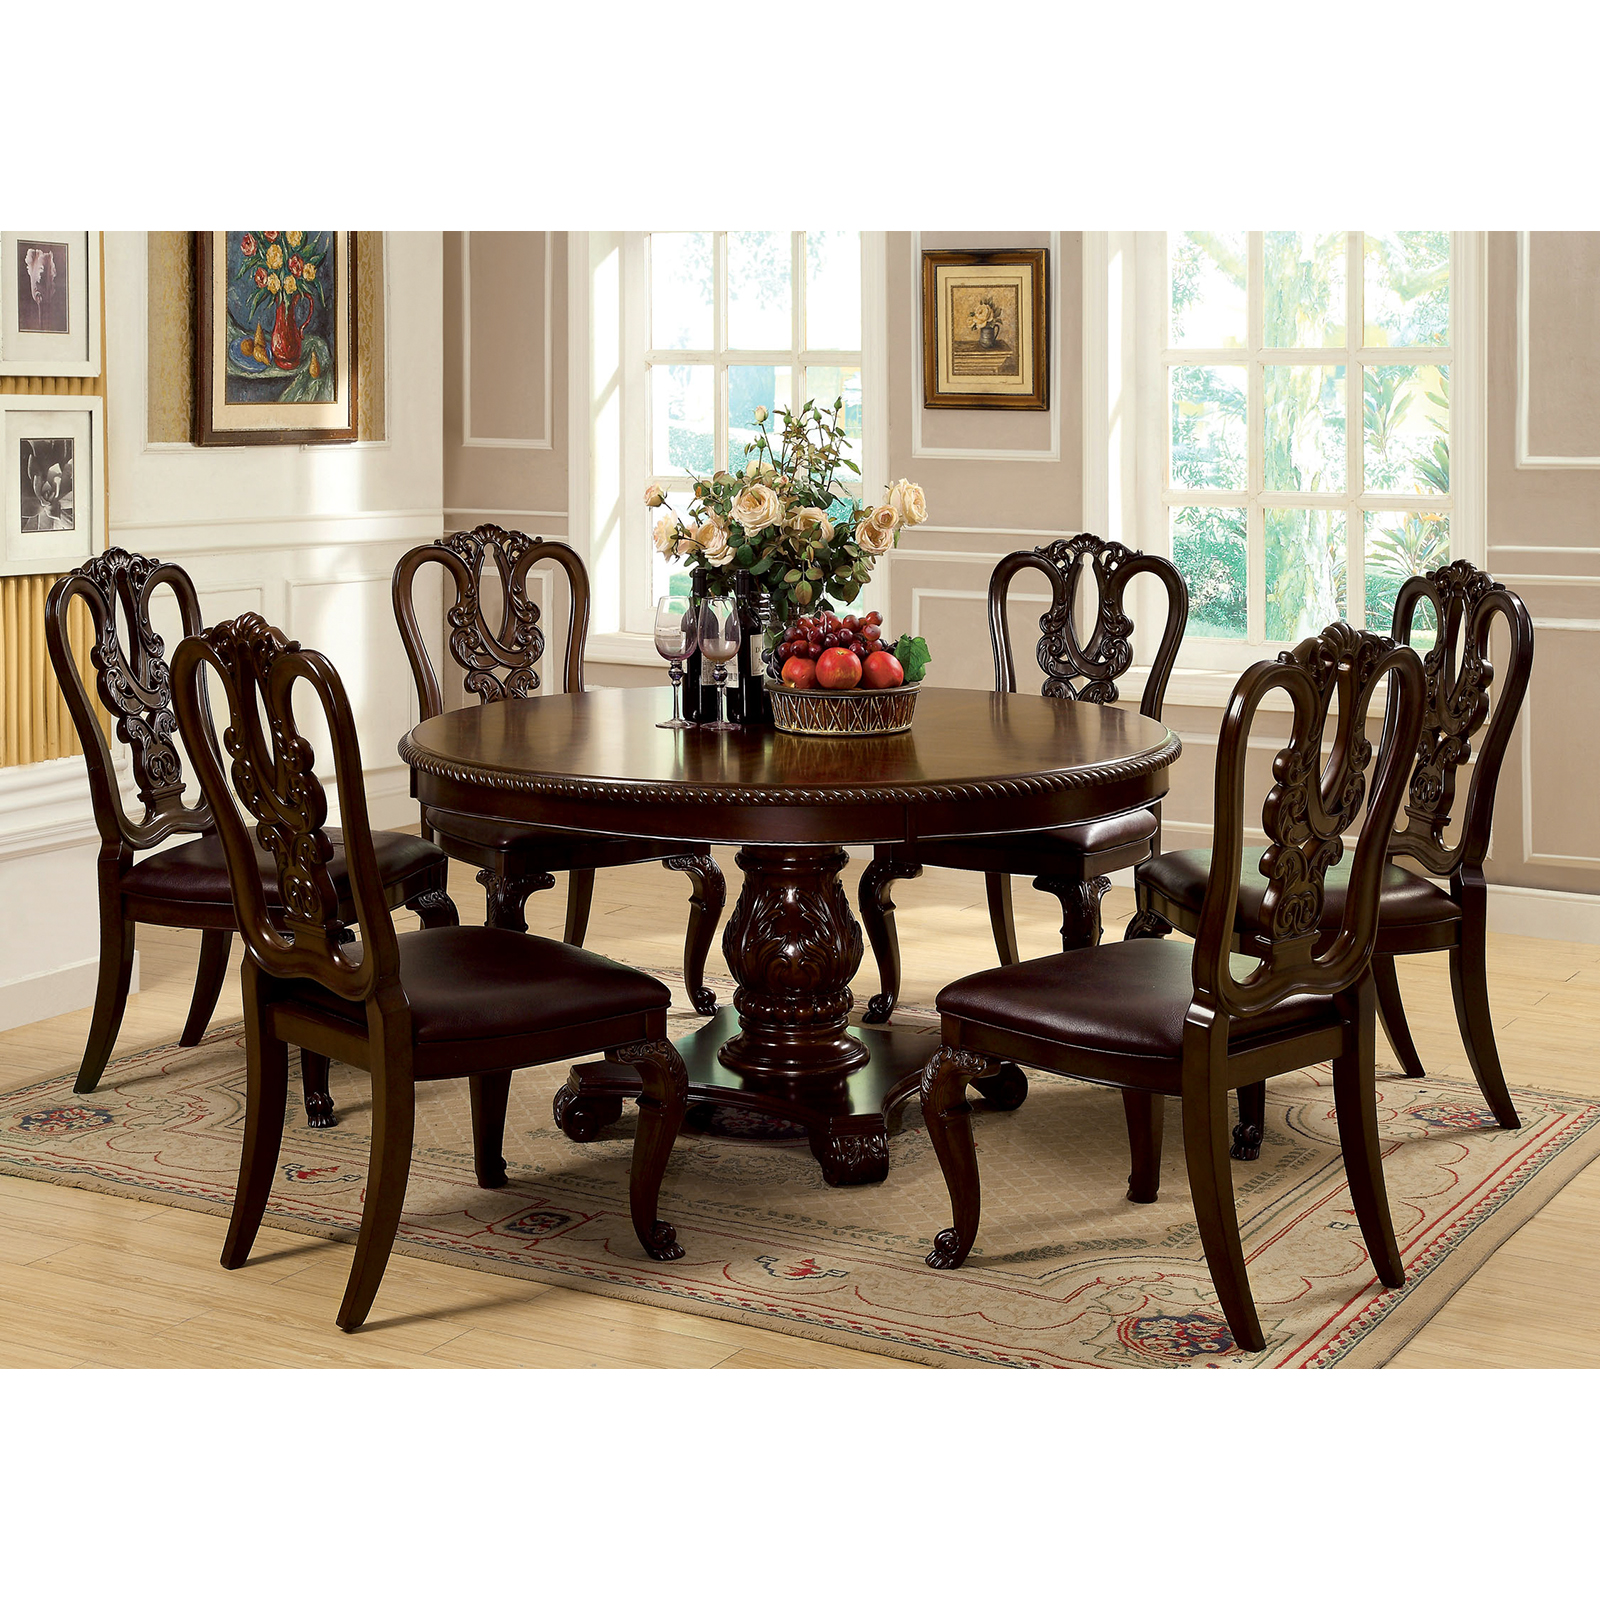 piece round dining set with wooden chairs brown cherry dining